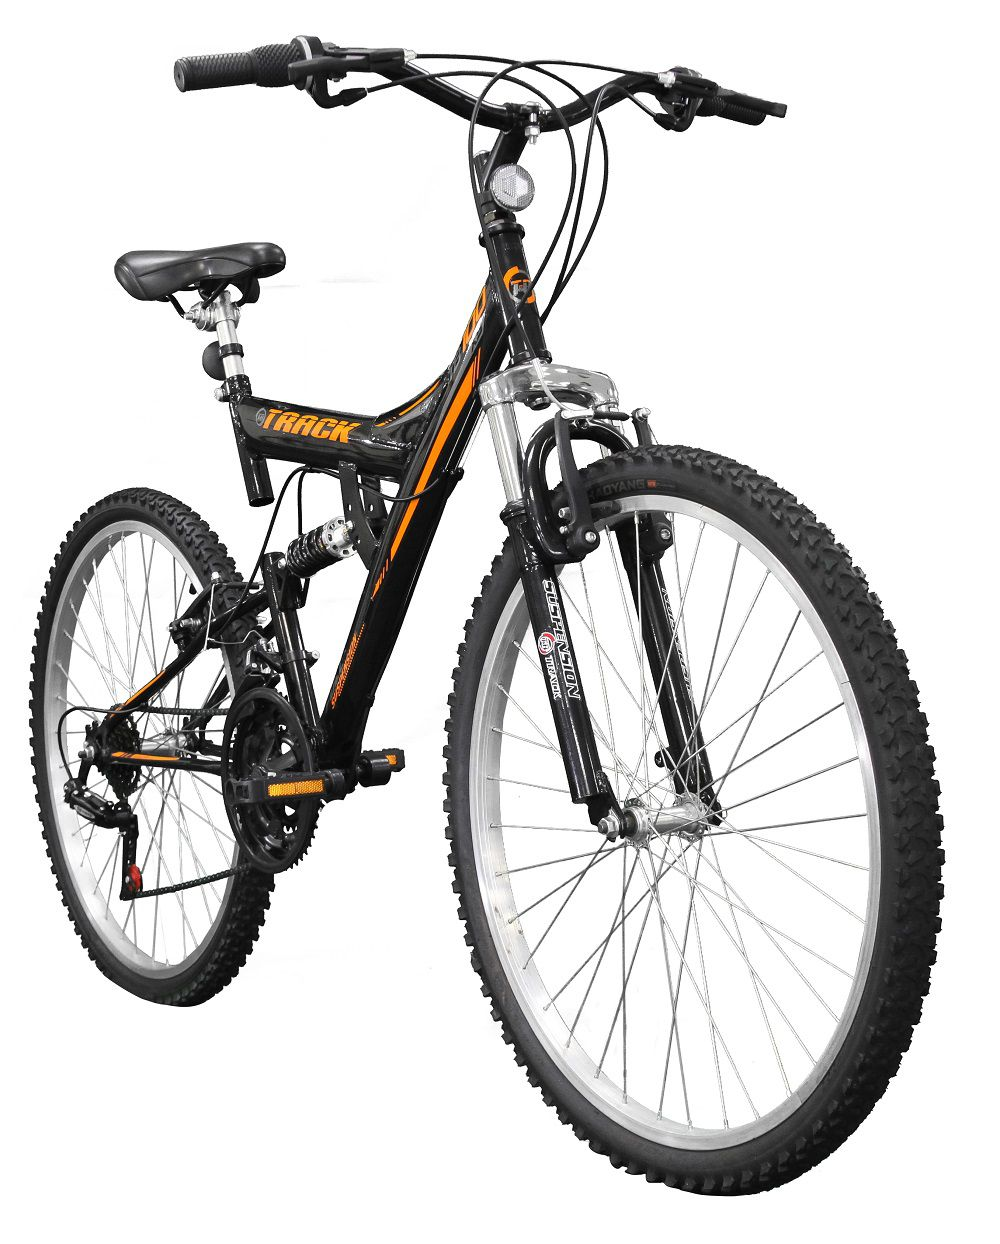 Bicicleta Track Bikes TB 100 Mountain Bike Aro 26 Seminovo